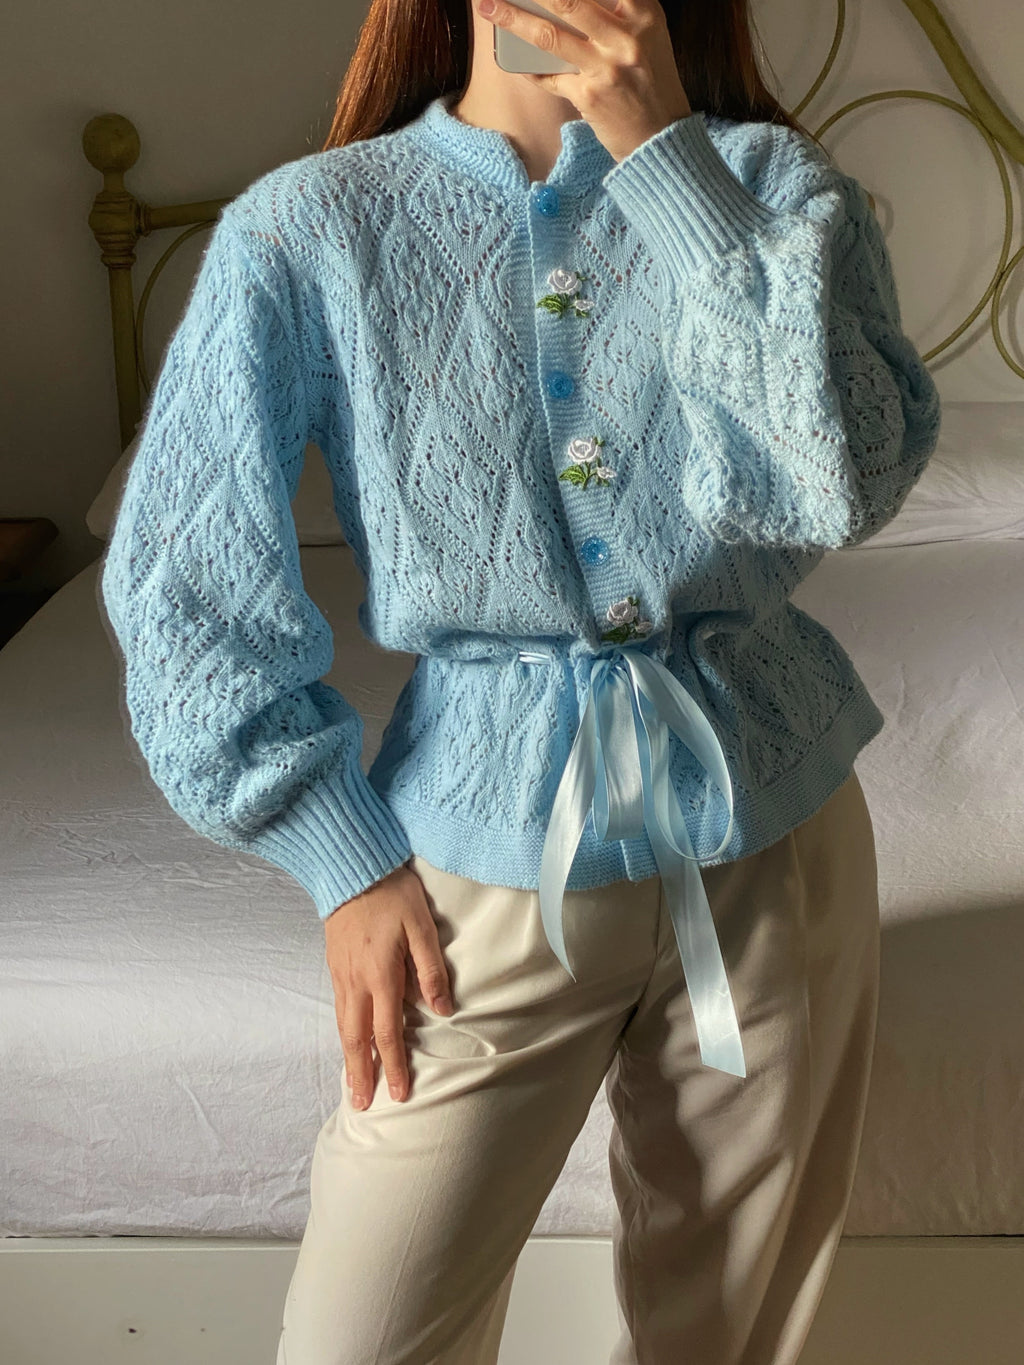 Vintage wool blend flowers appliquè knitted cardigan